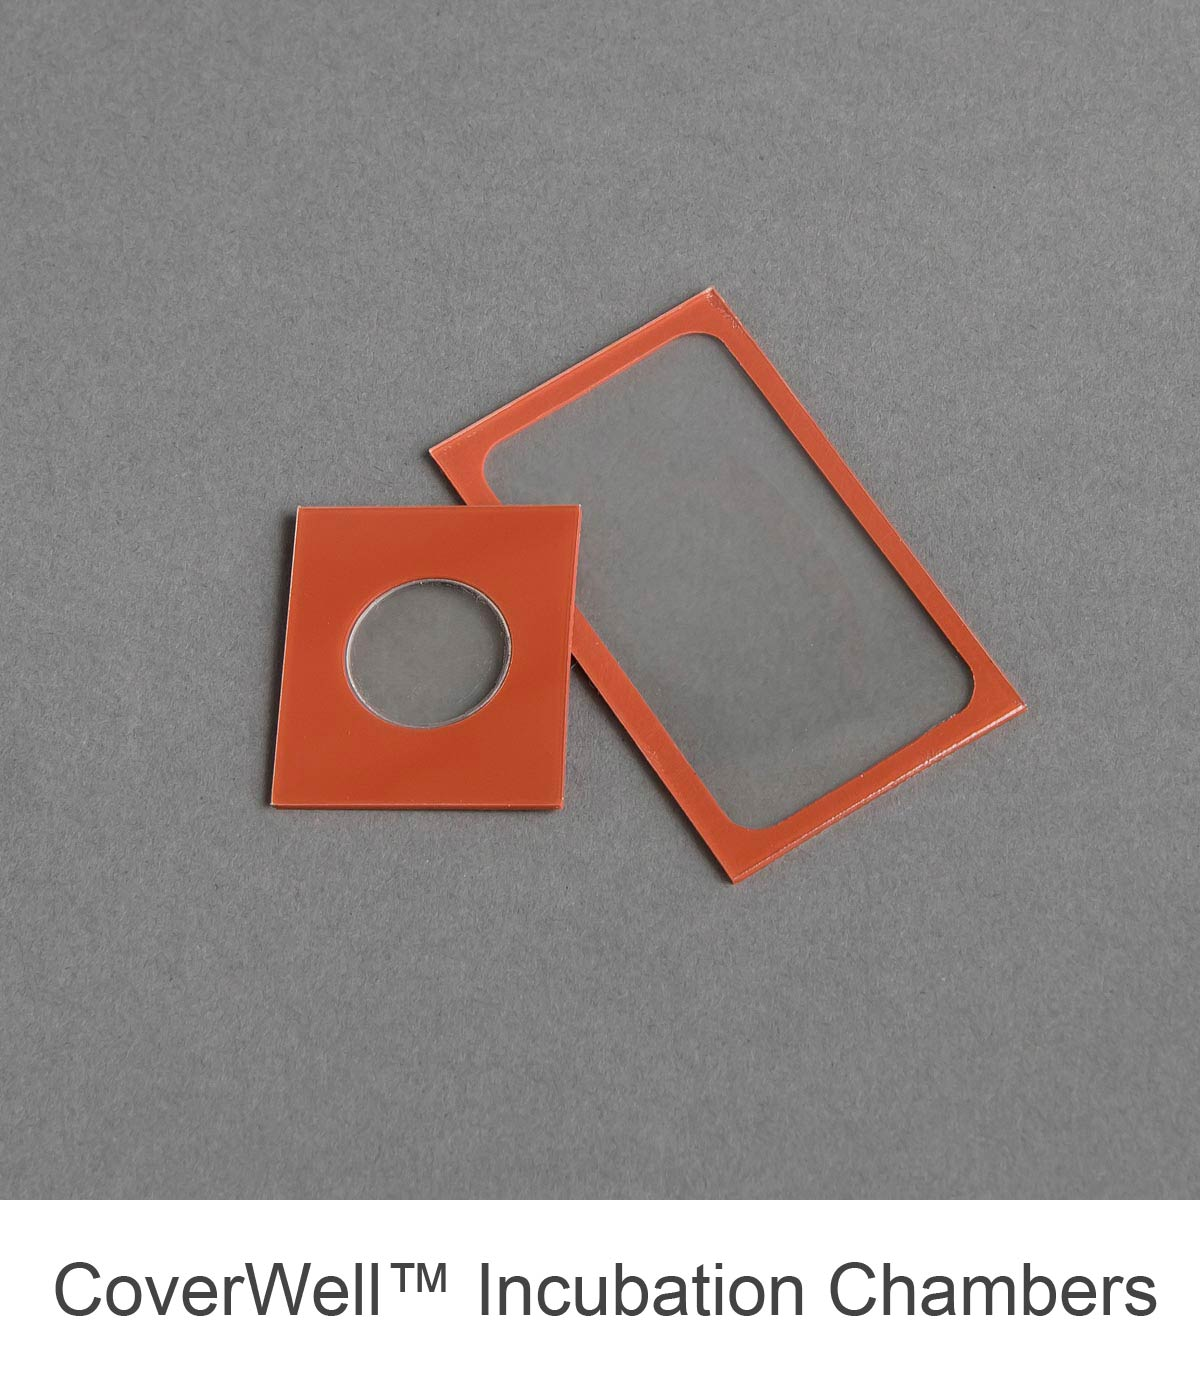 CoverWell™ Incubation Chambers